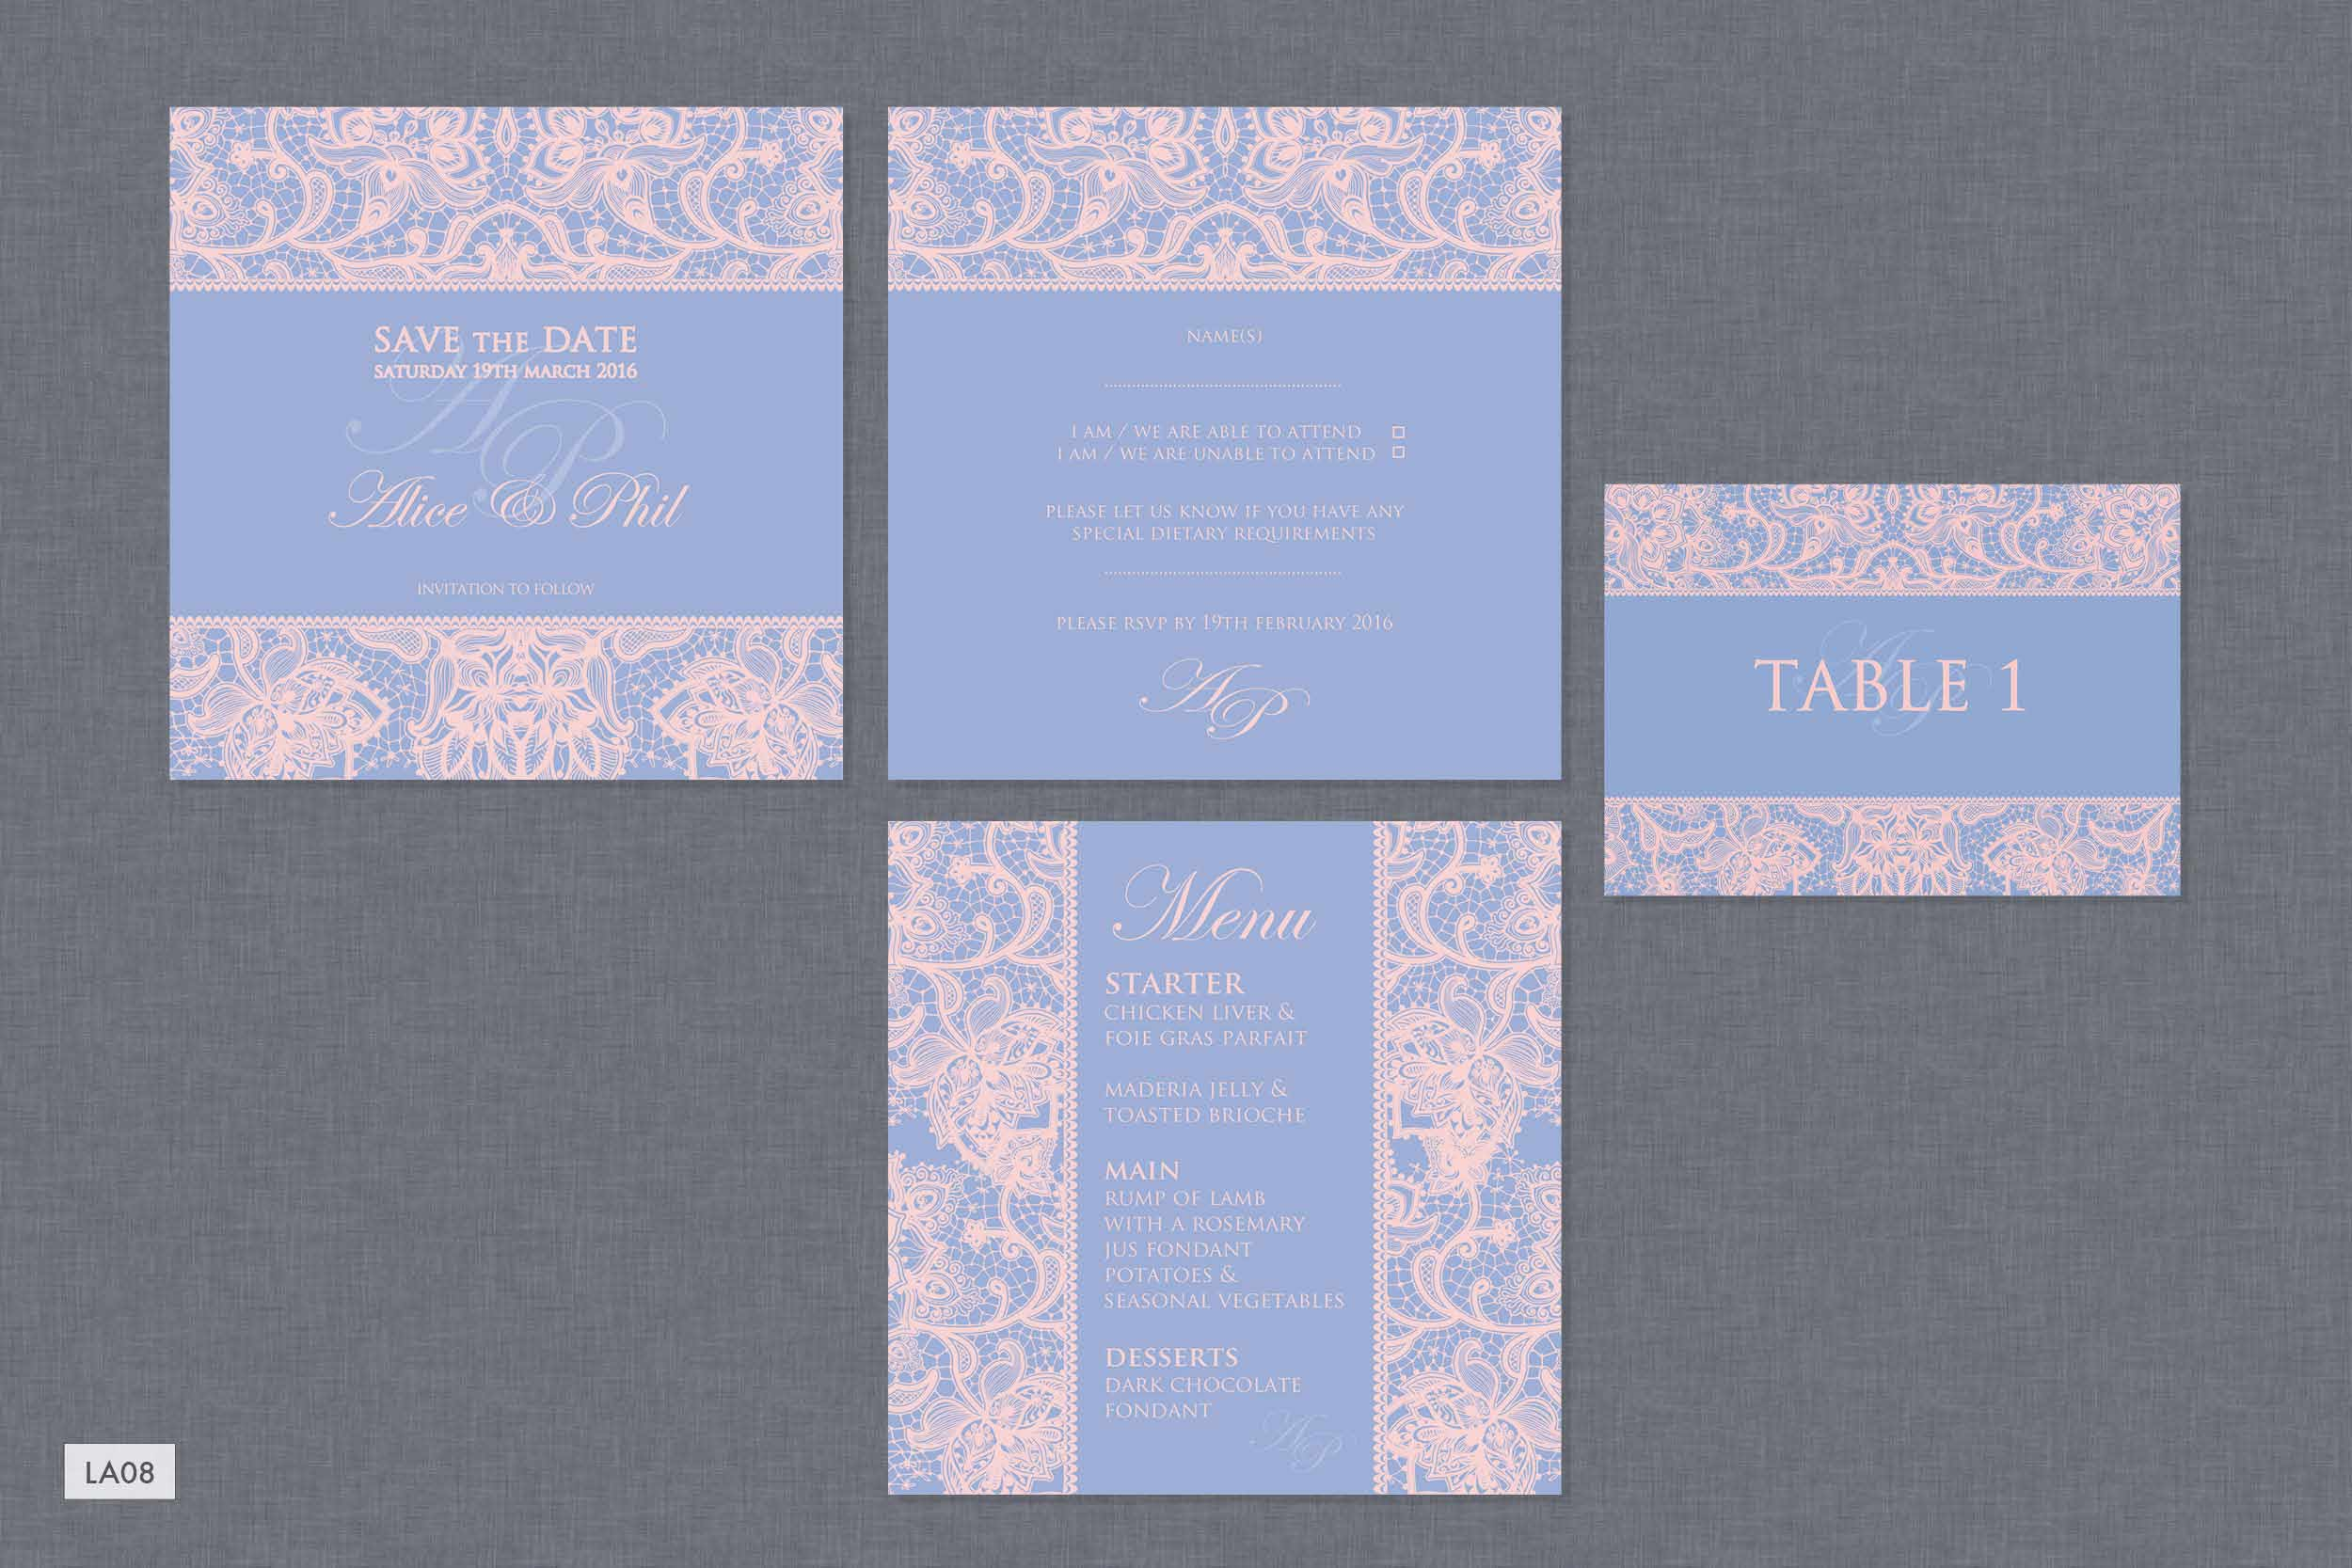 ananya-wedding-stationery-lace30.jpg